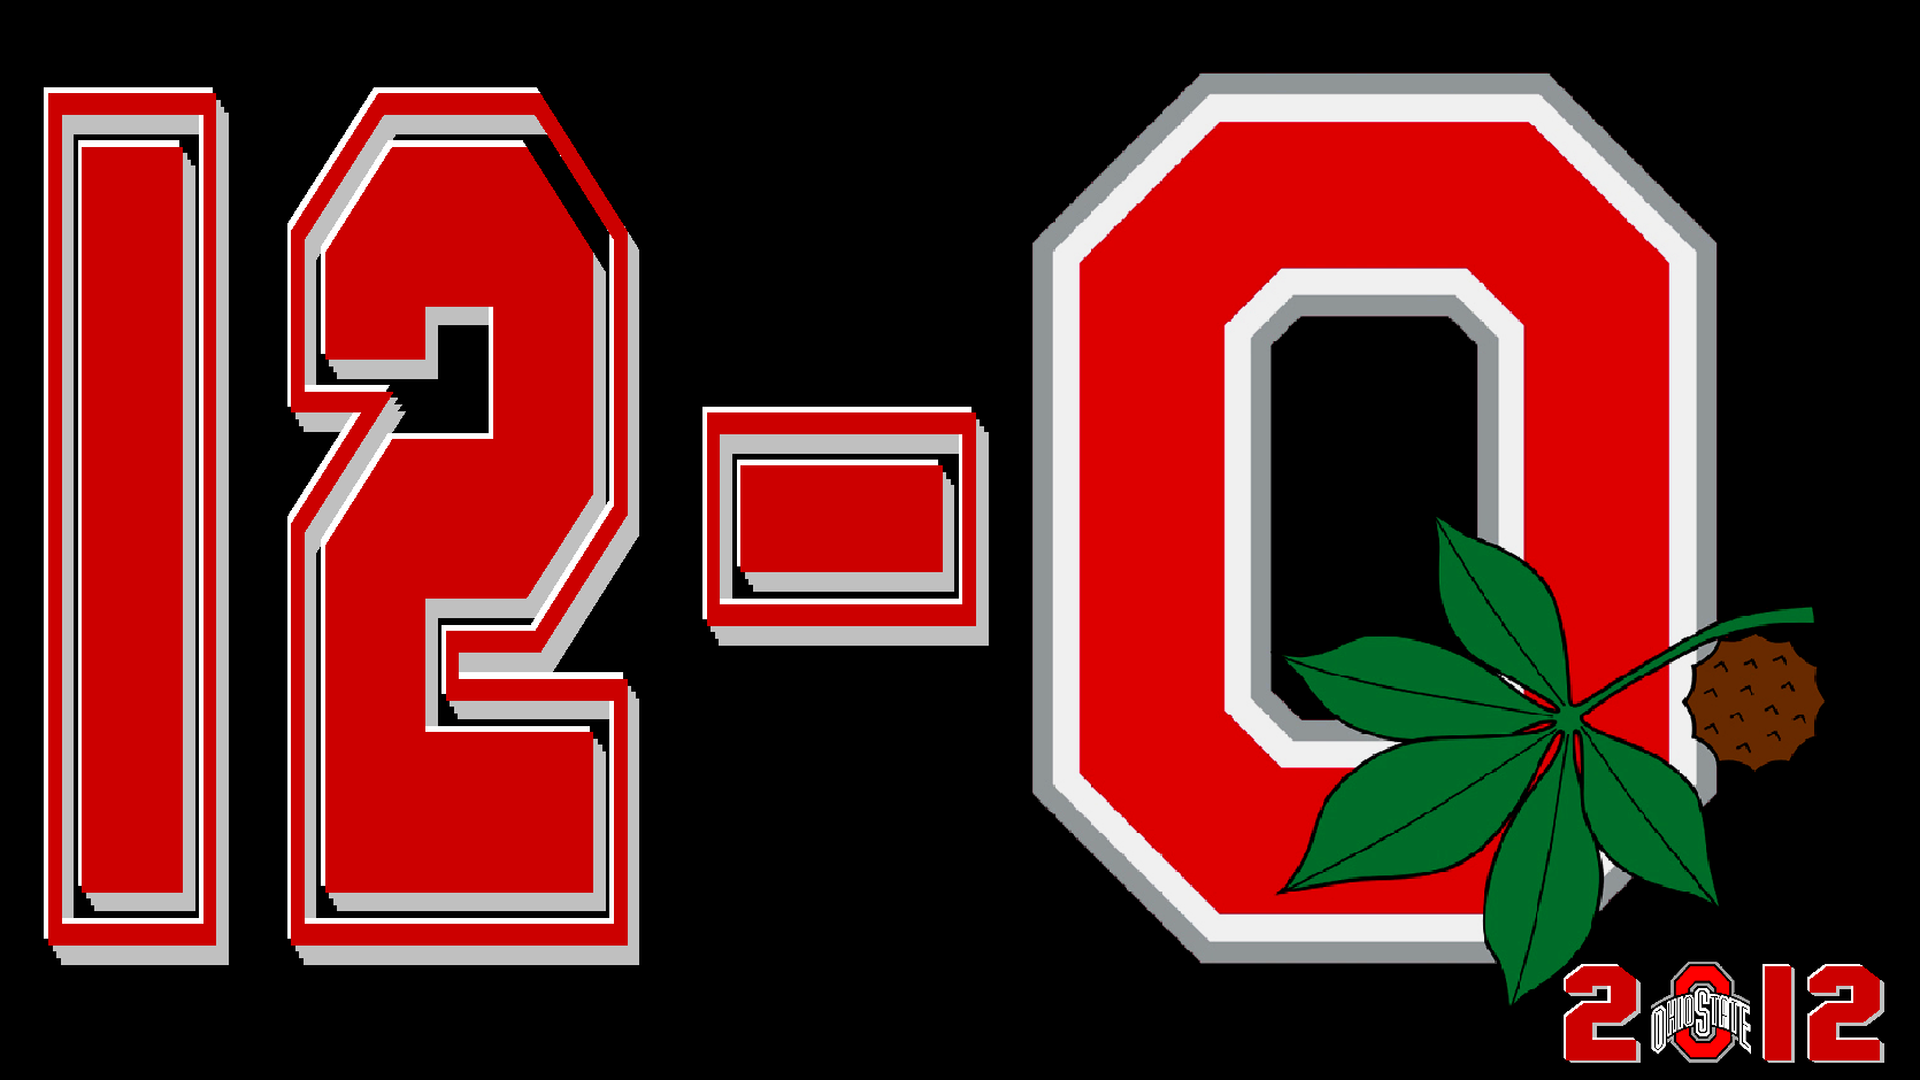 The Official 2013 Ohio State Buckeyes Football Thread